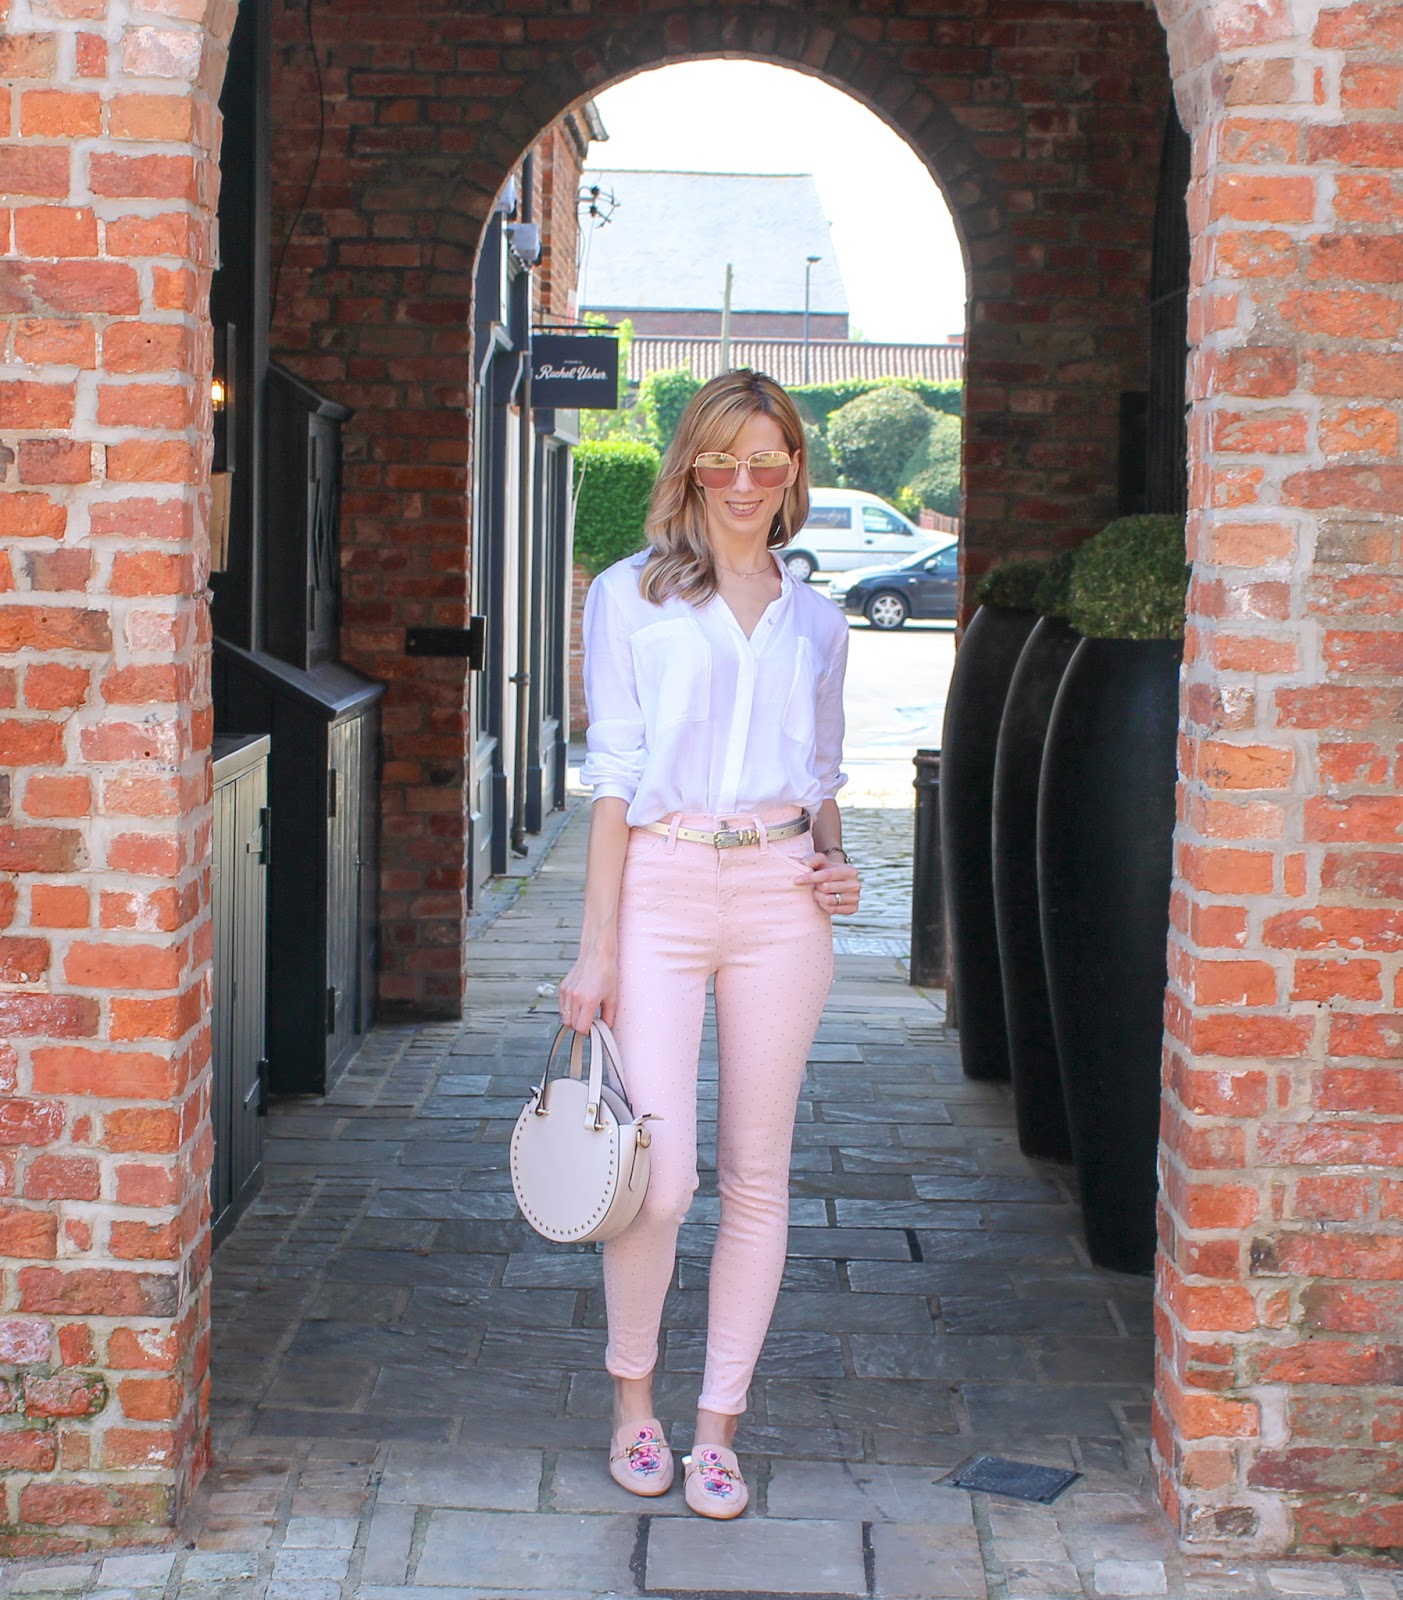 How To Wear Coloured Jeans - 5